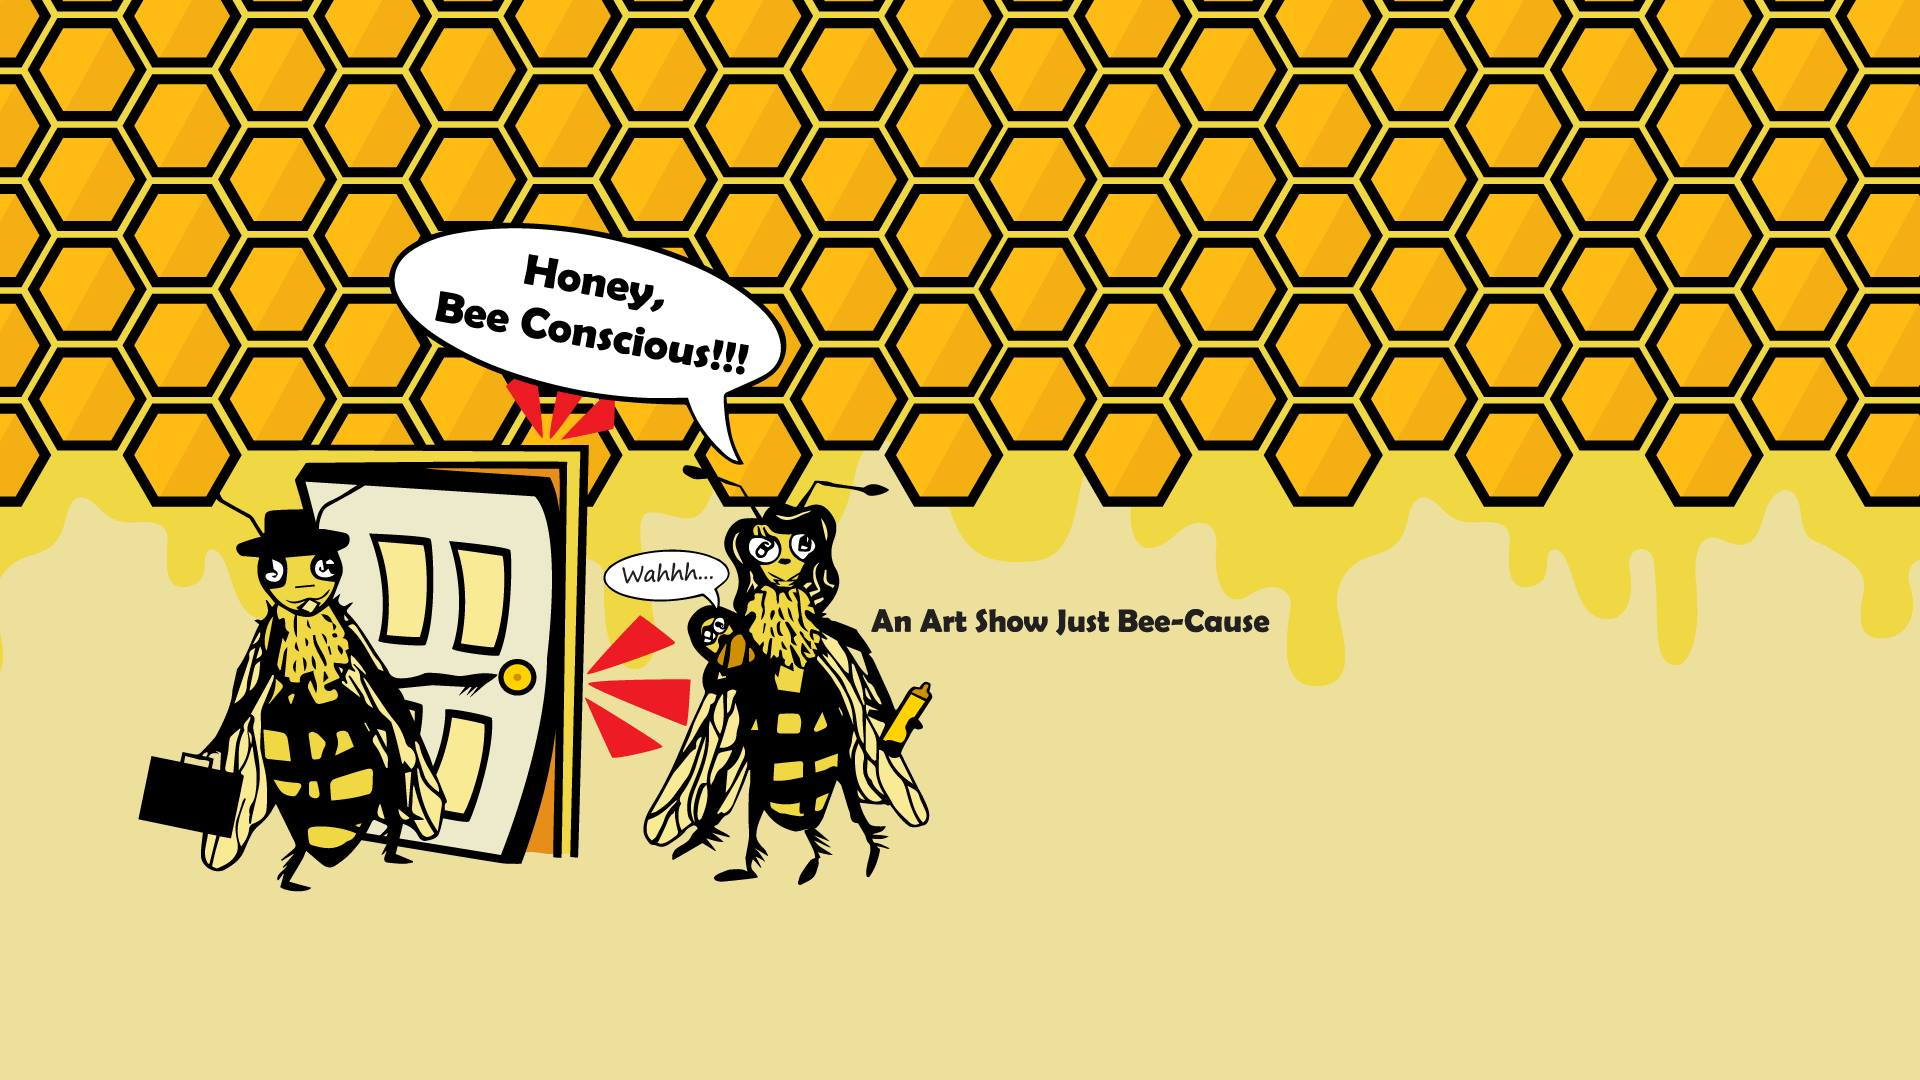 Honey, Bee Conscious Art Show Public · Hosted by Mind & Mill